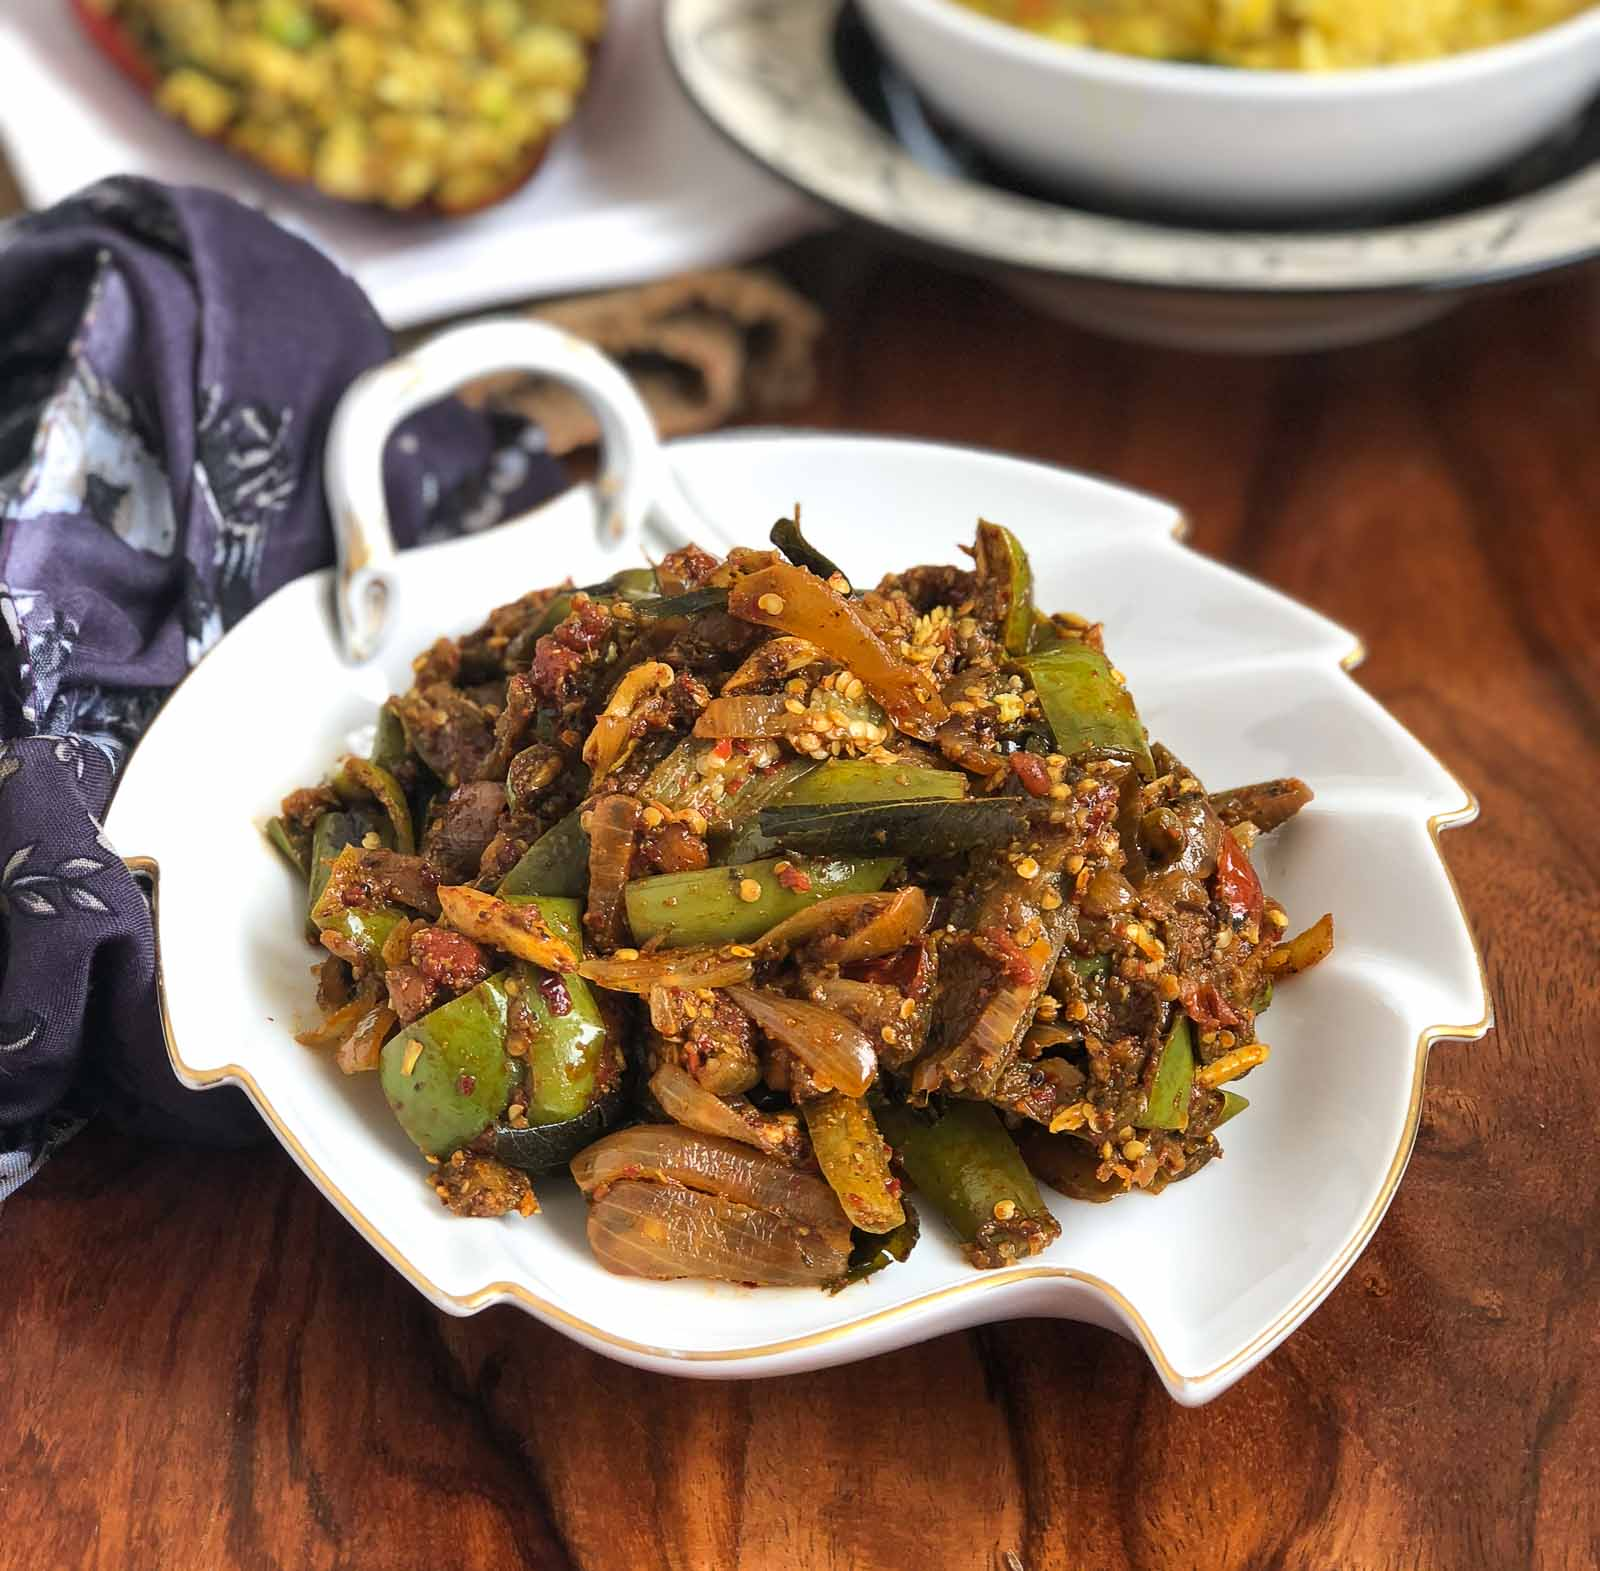 Kathirikai Poondu Pirattal Recipe - South Indian Style Brinjal Stir Fry With Garlic